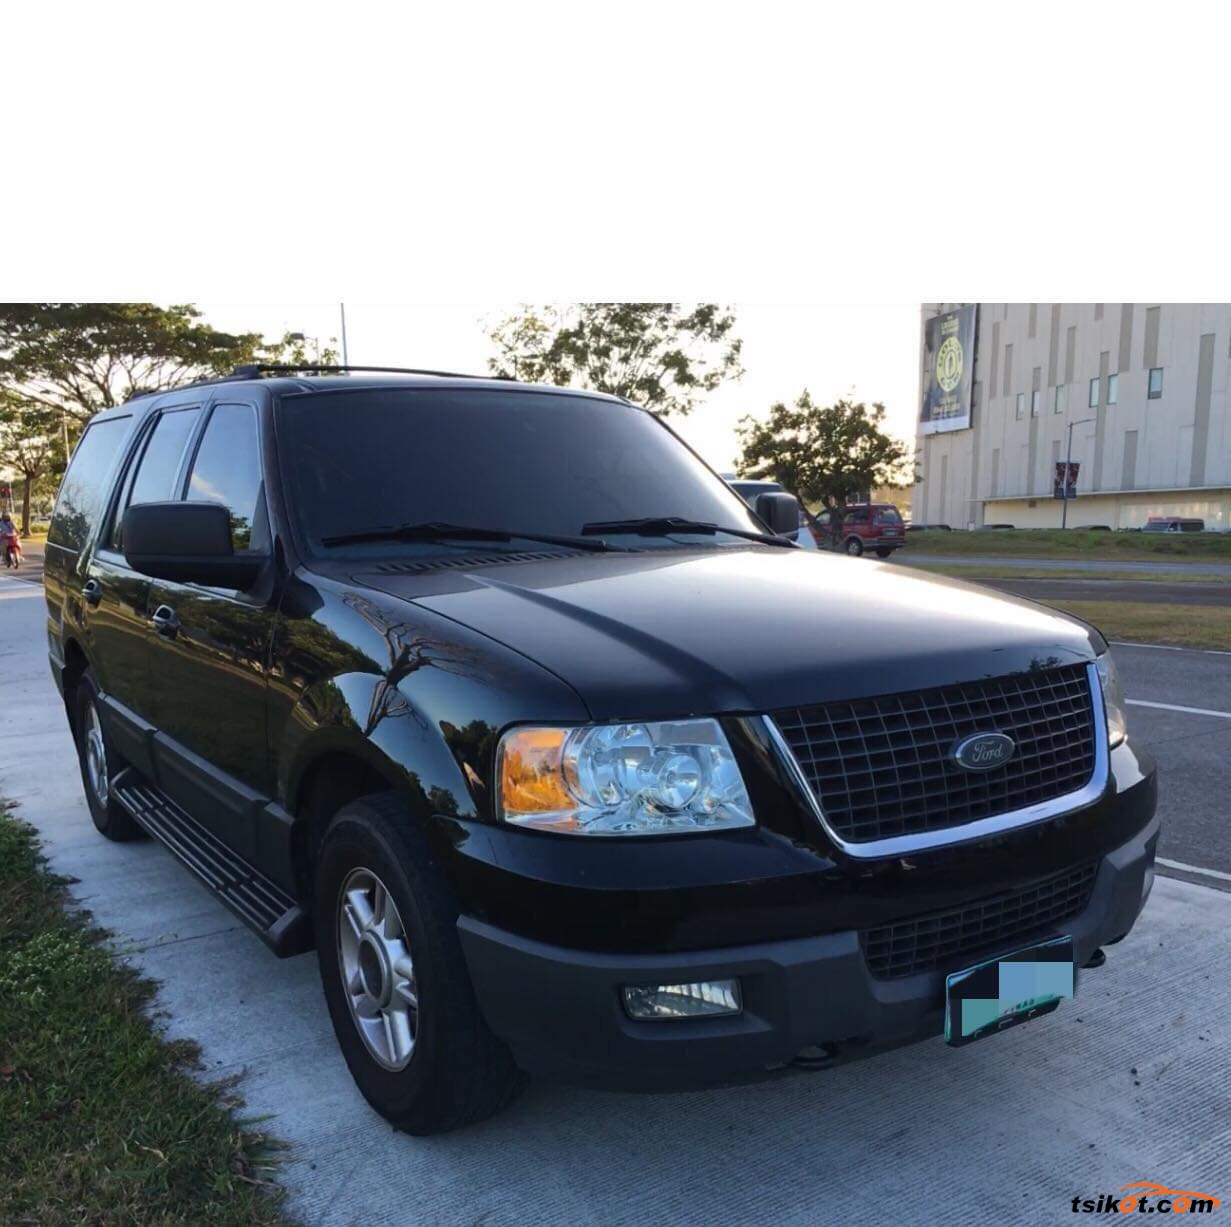 Ford Expedition 2003 - 1